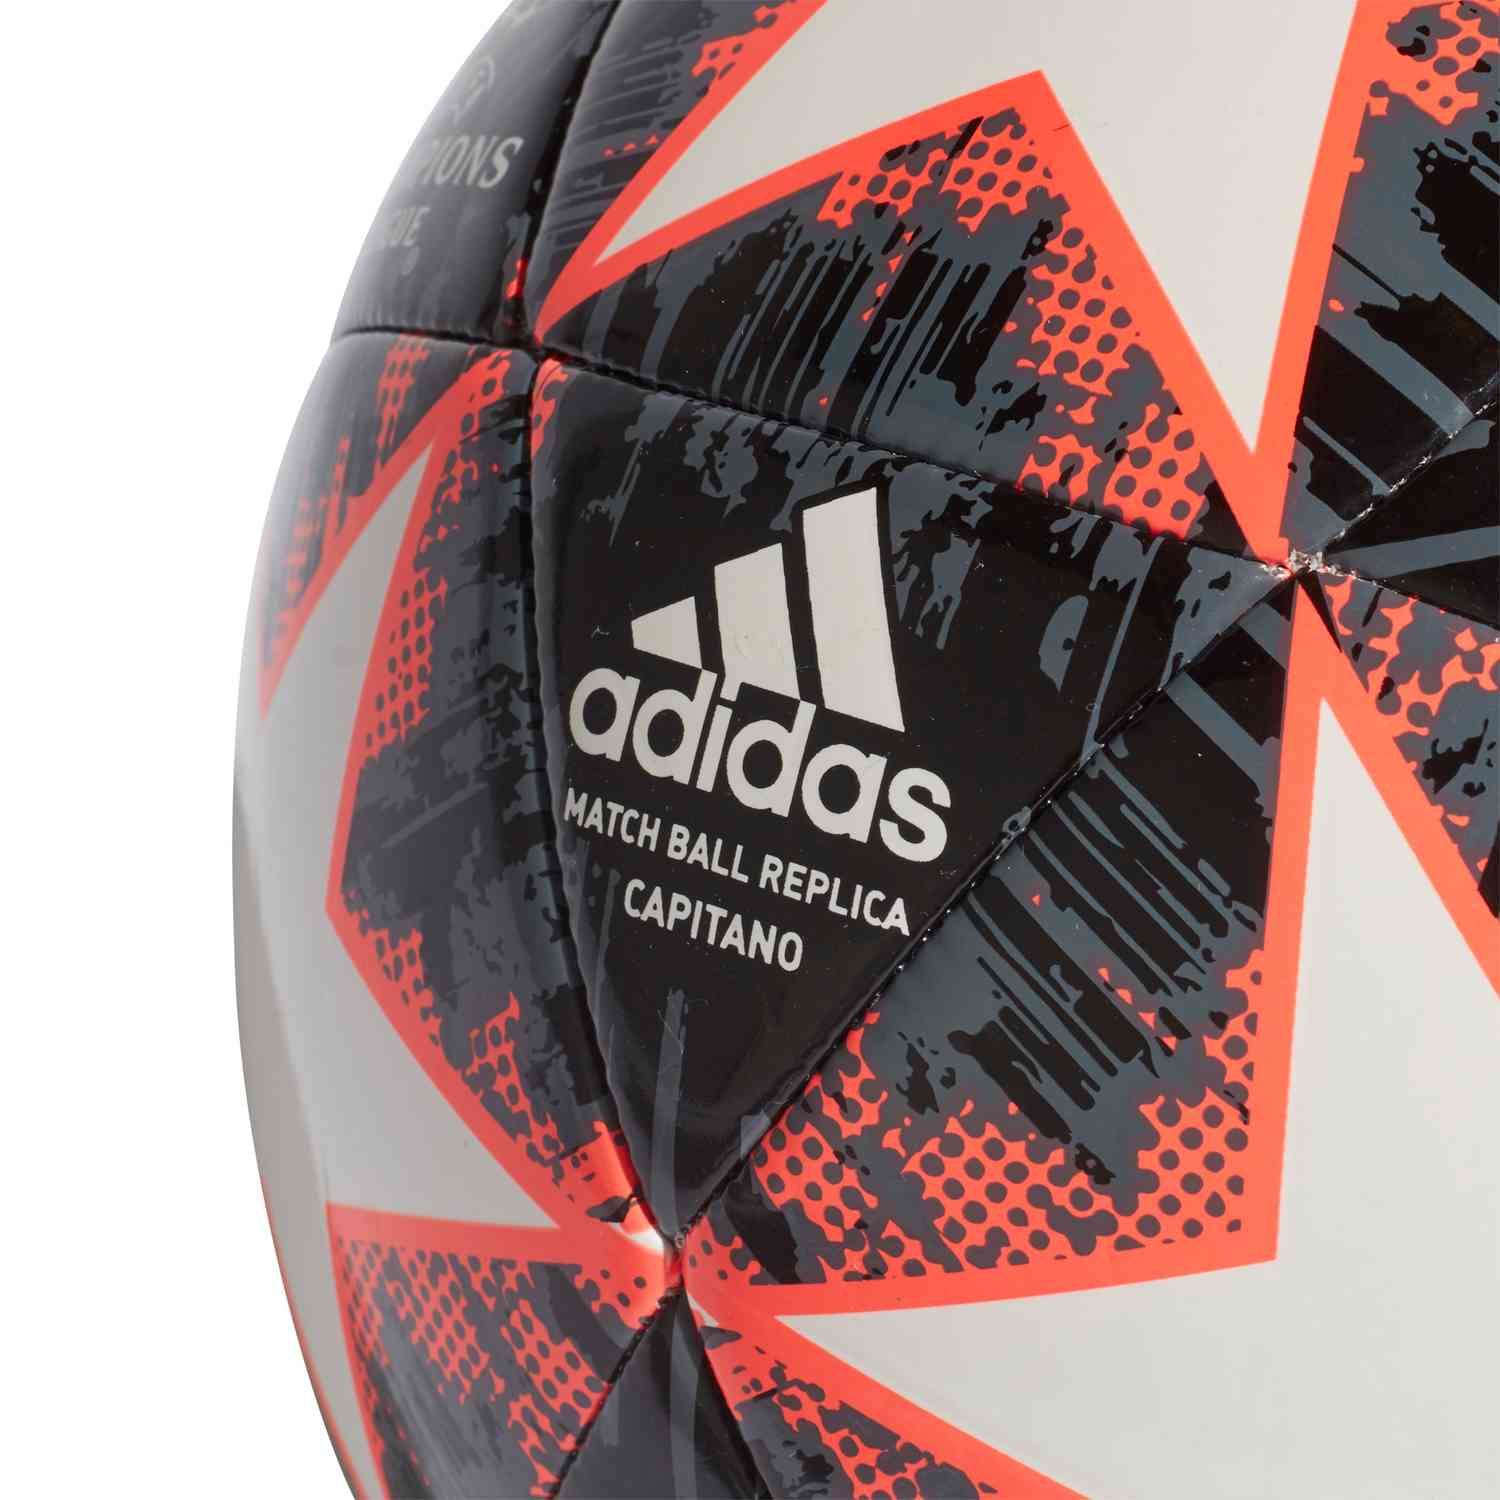 adidas Finale 18 Capitano Soccer Ball - White Black Gray 5 Solar Red ... 4ba906c8c0